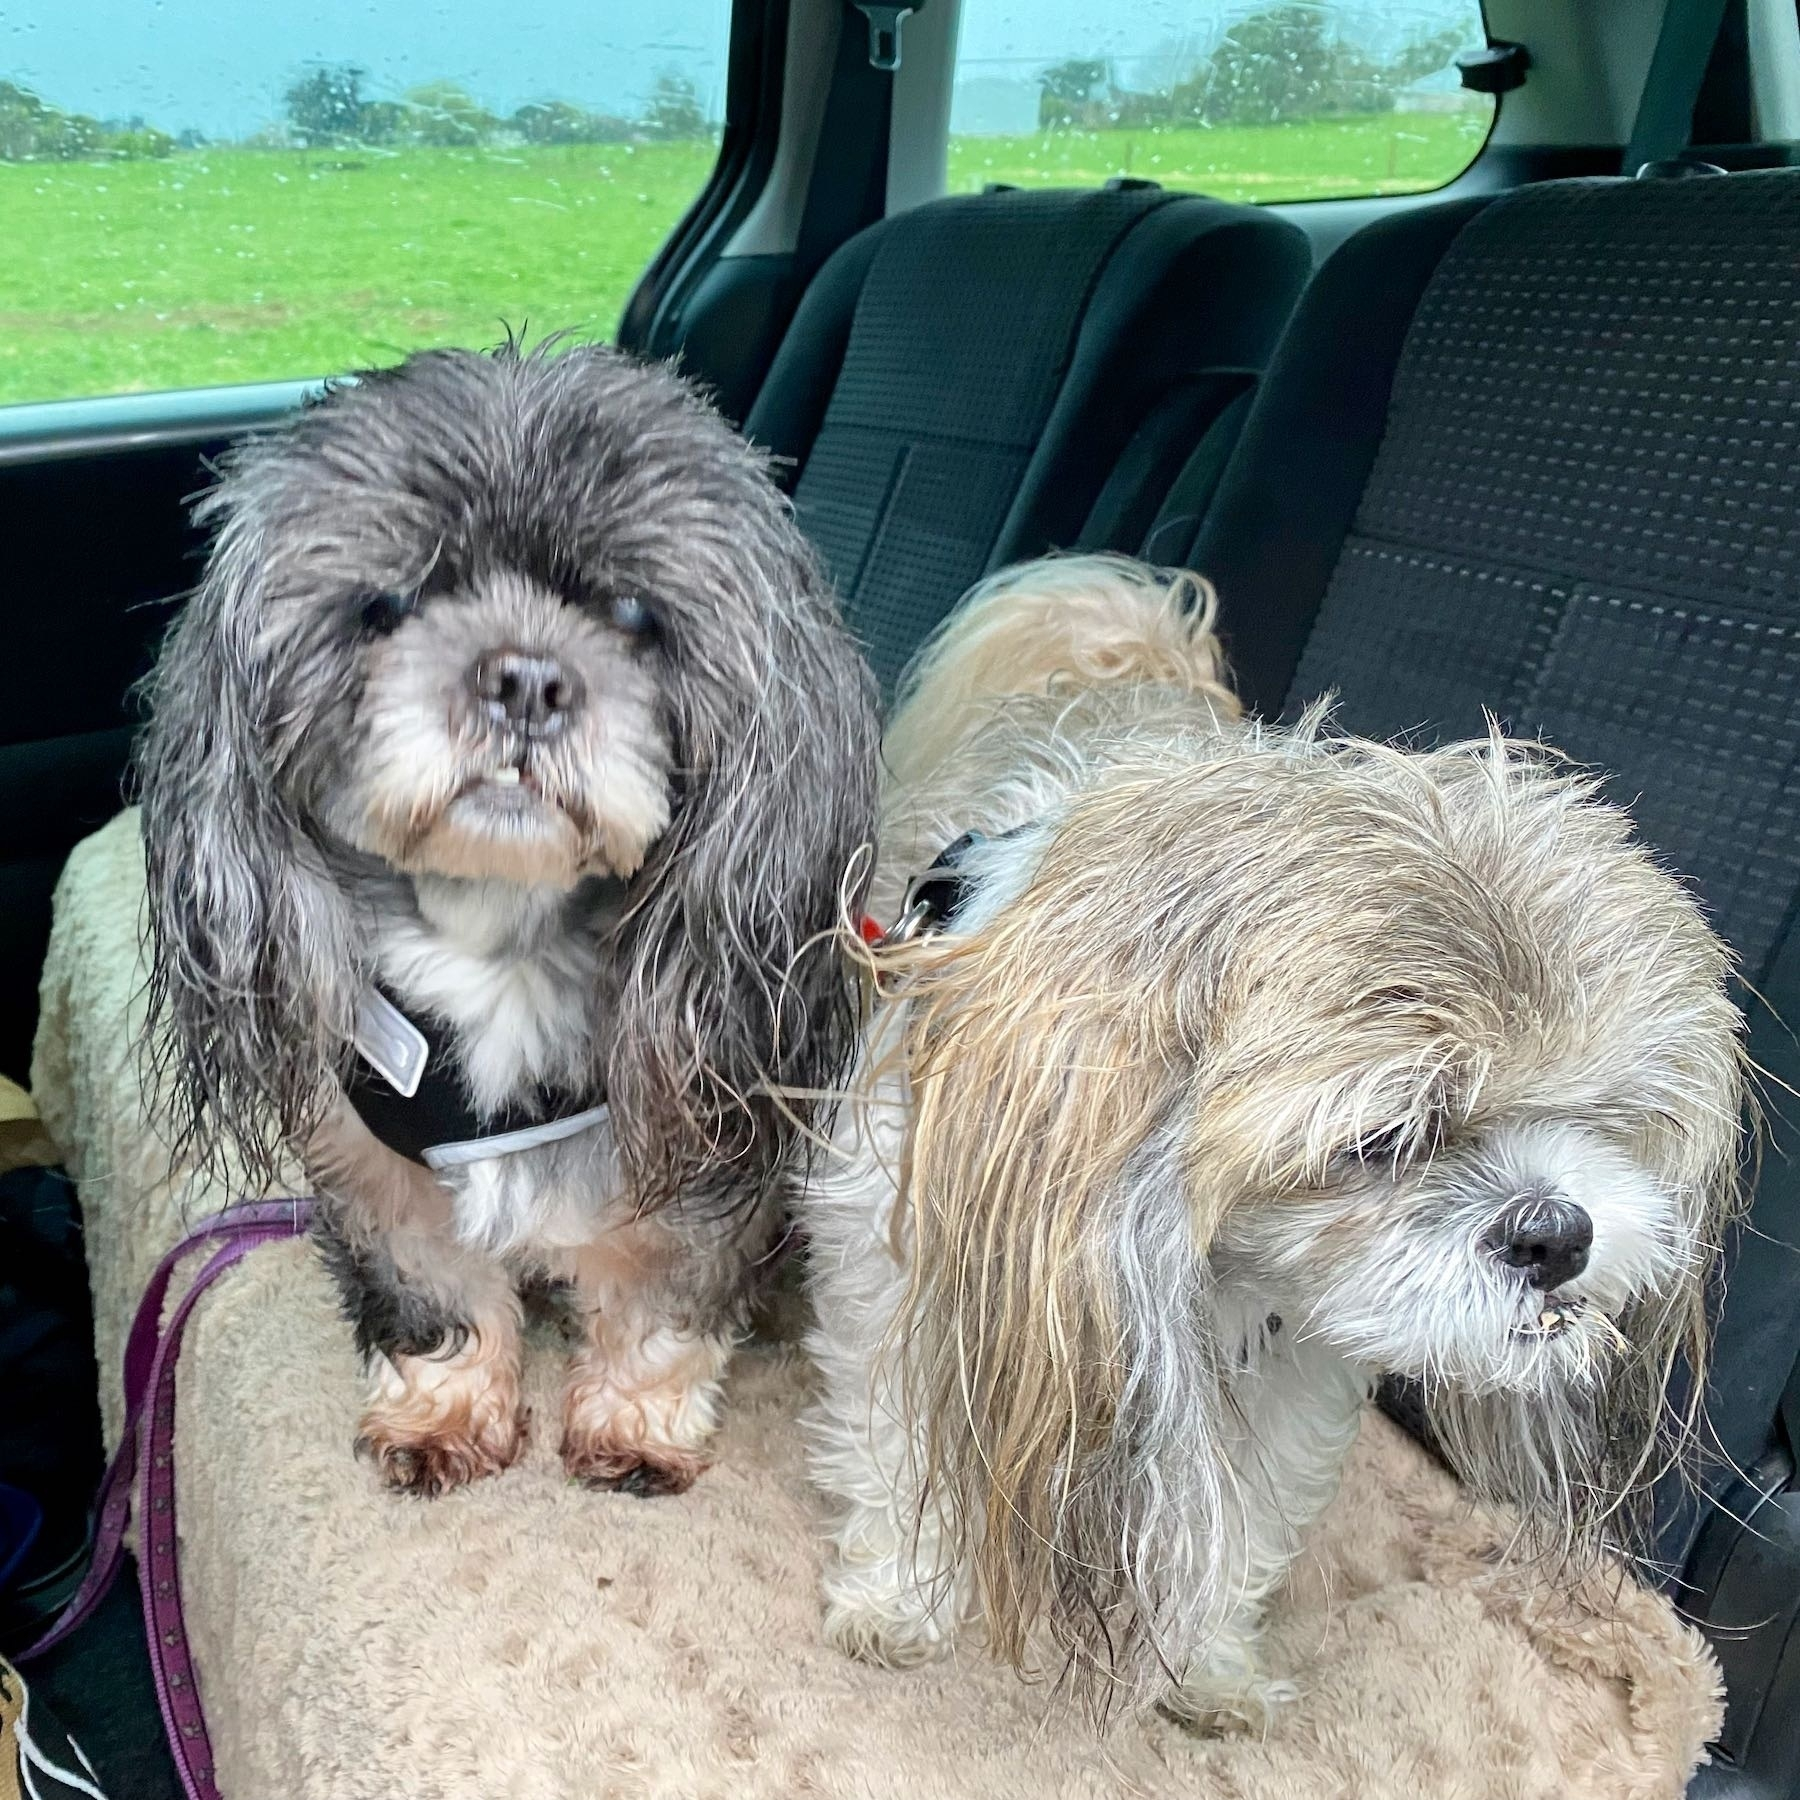 Two shaggy small dogs.